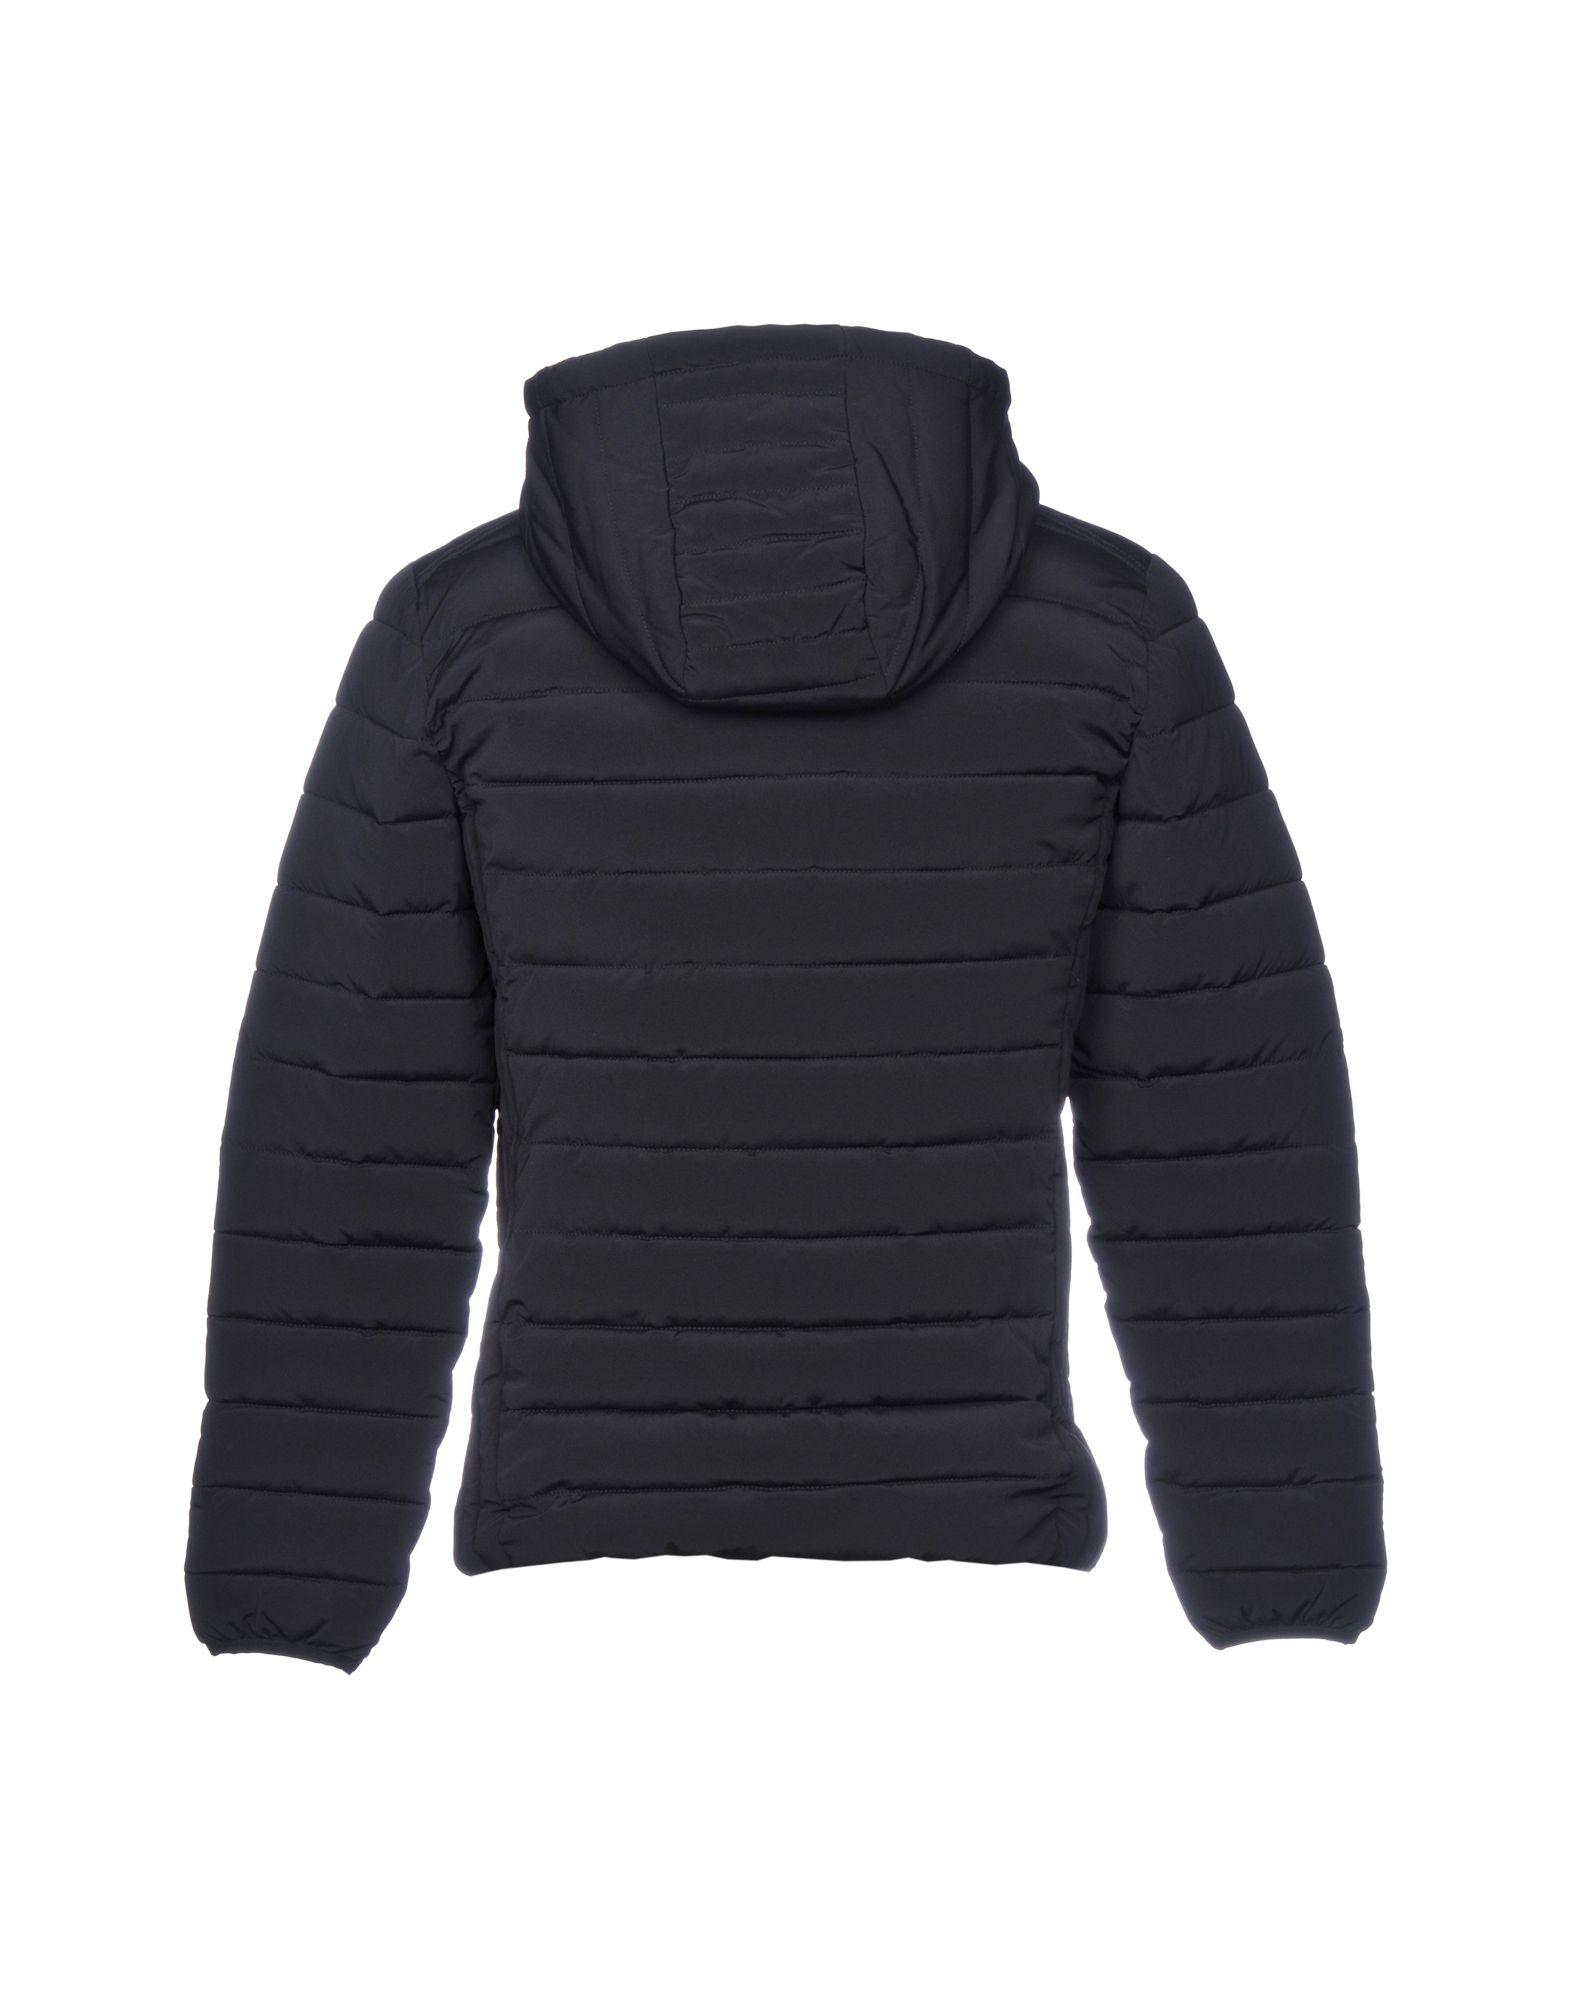 Paolo Pecora Synthetic Down Jacket in Black for Men